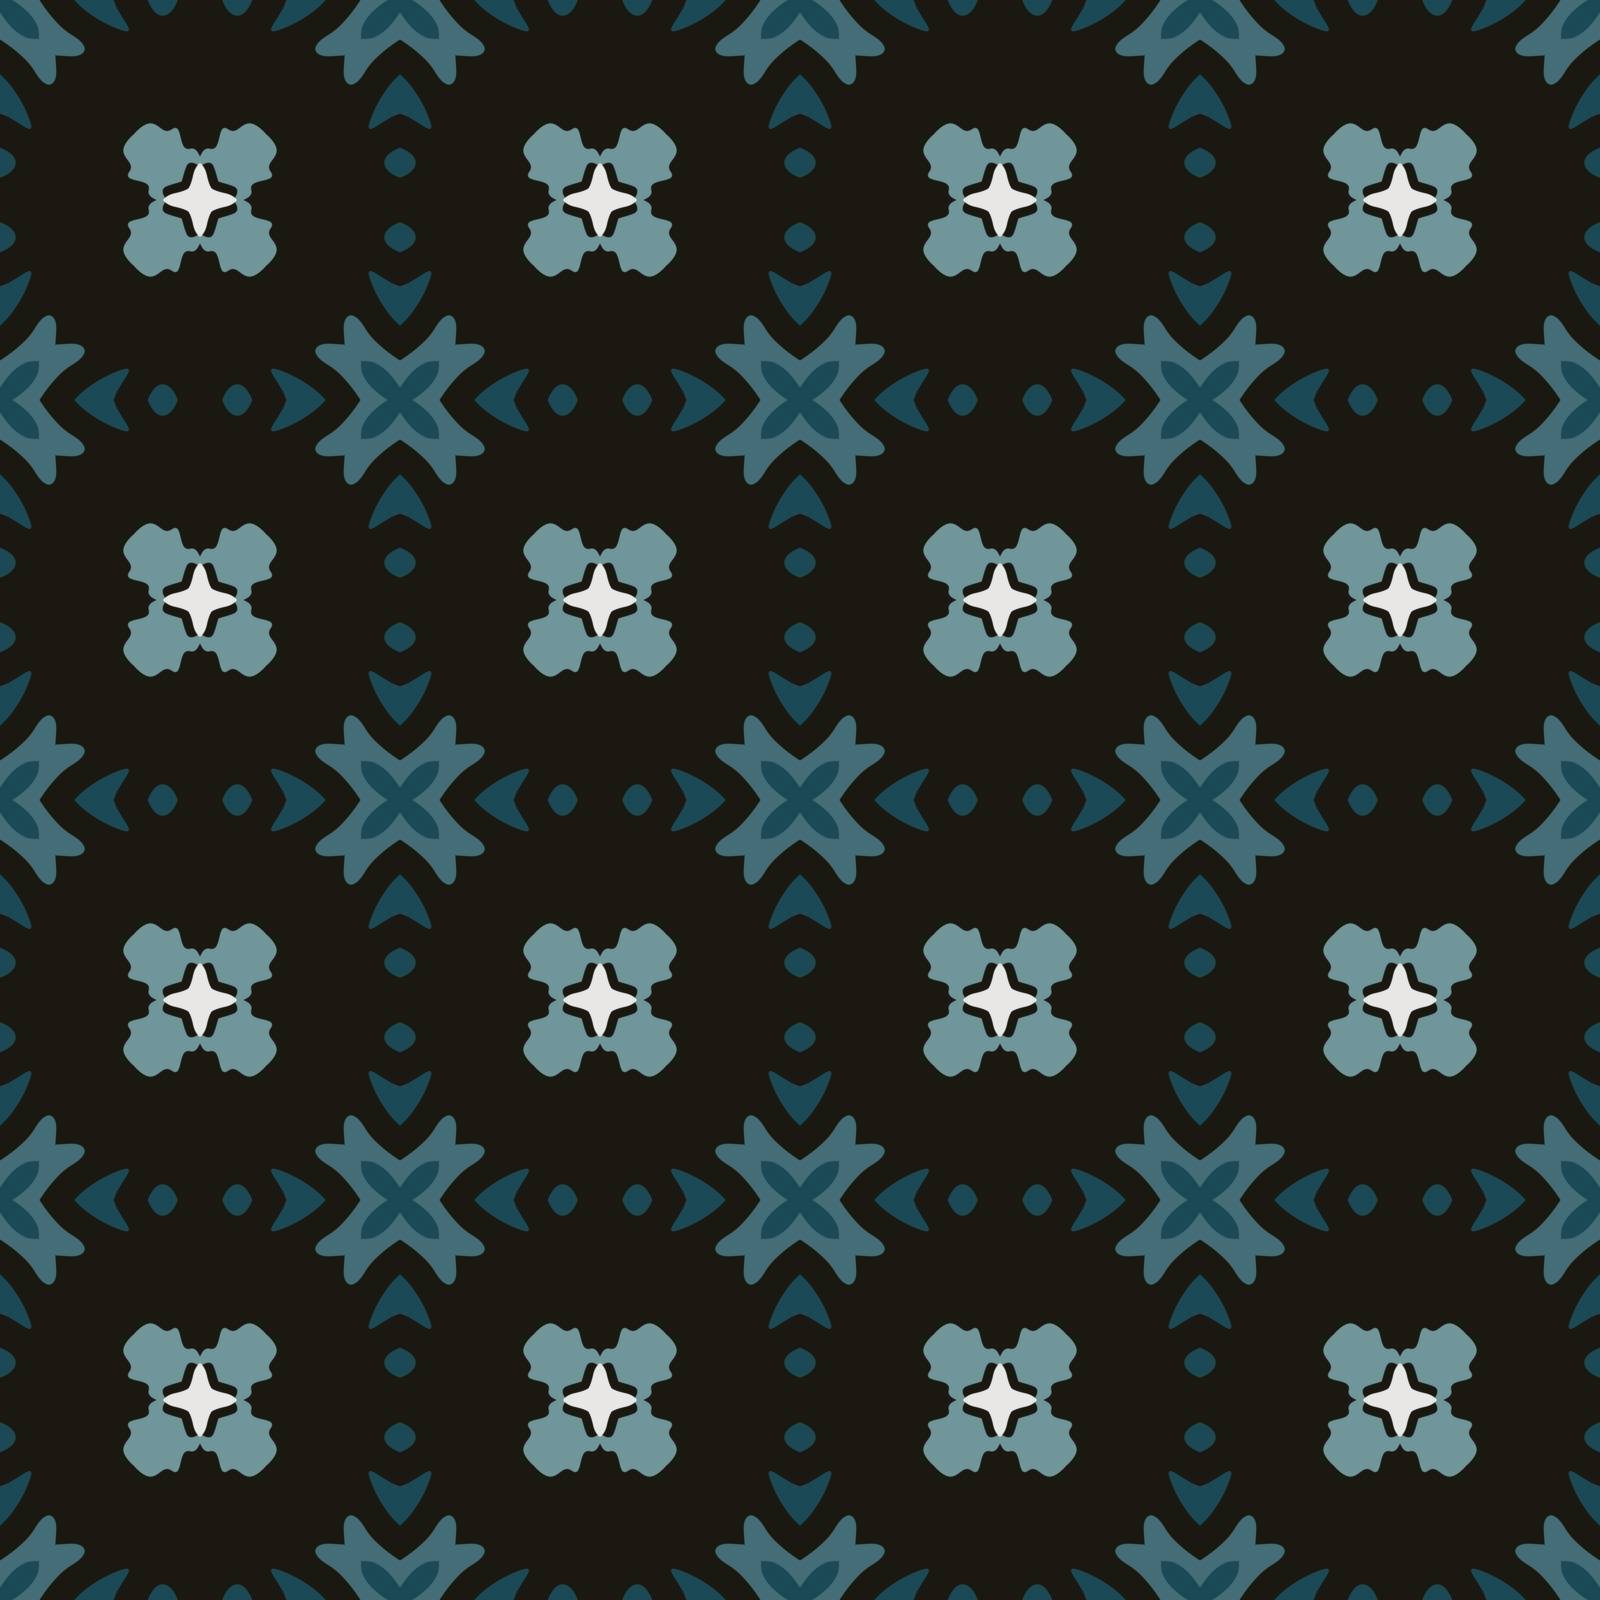 Seamless illustrated pattern made of abstract elements in white, black and shades of blue